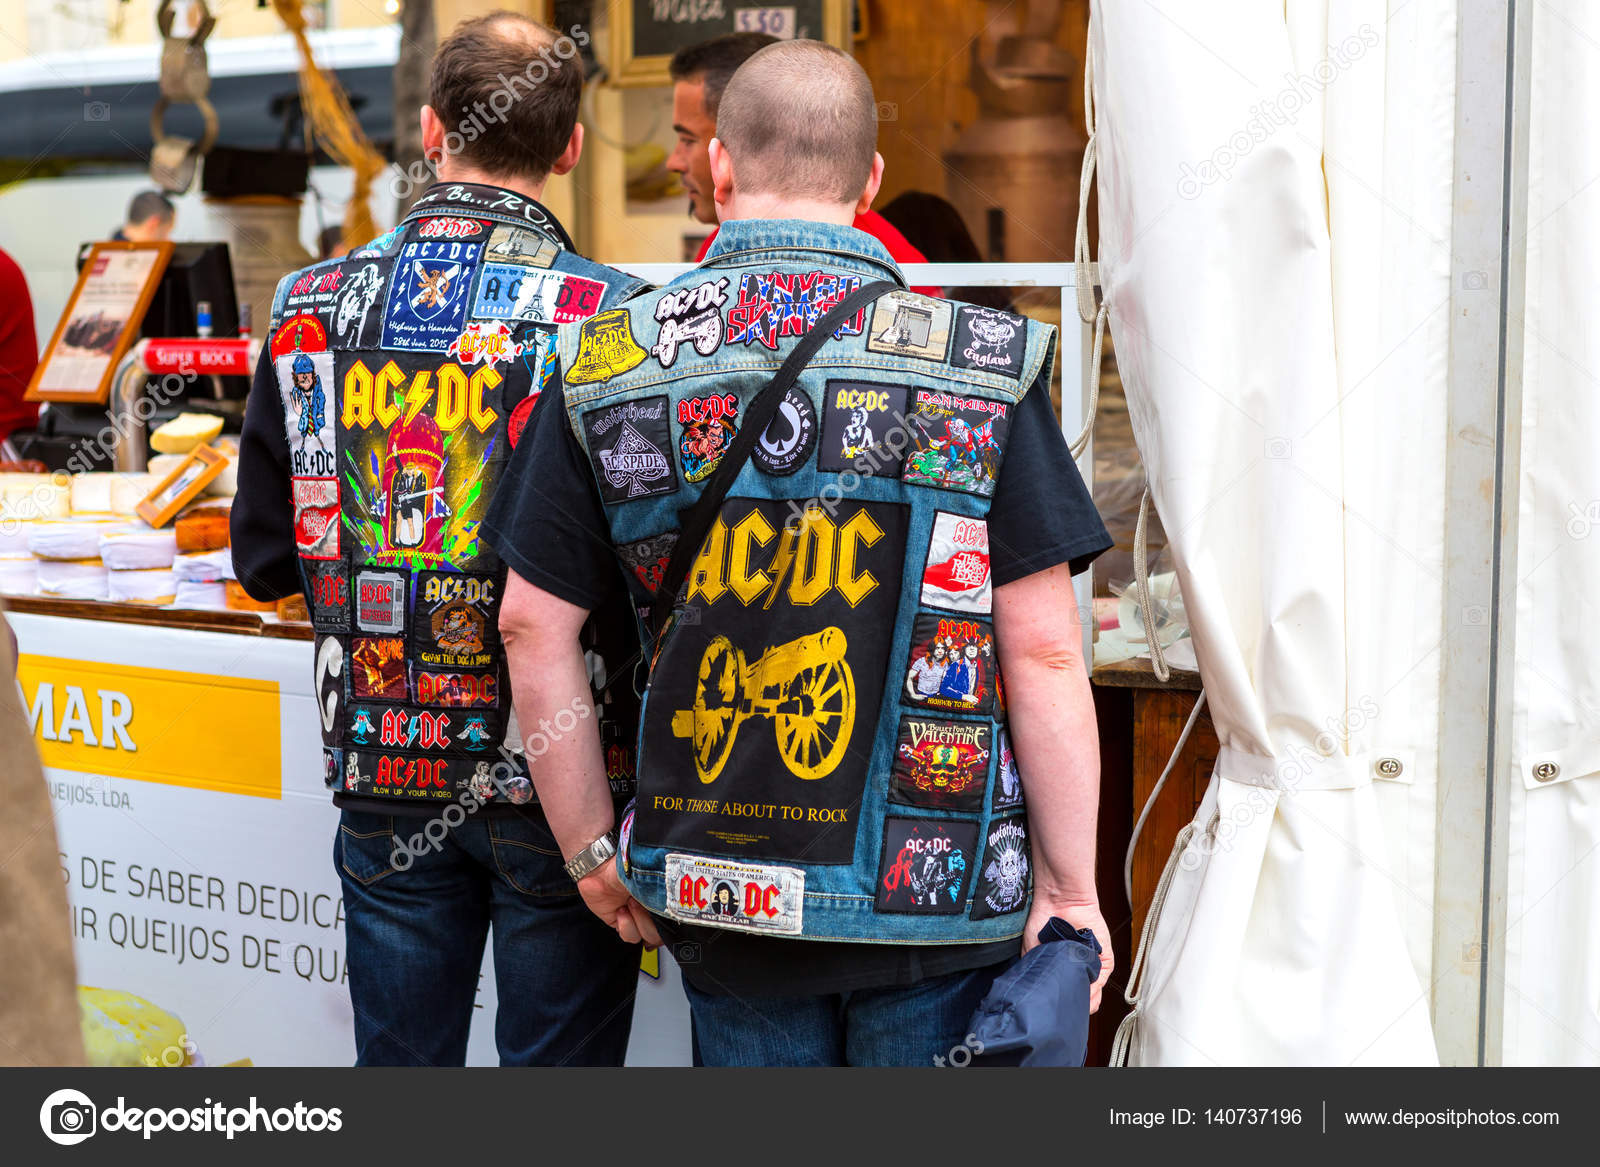 Lisbon, Portugal - 05 06 2016: Two fans of band AC/DC wearing ja ...